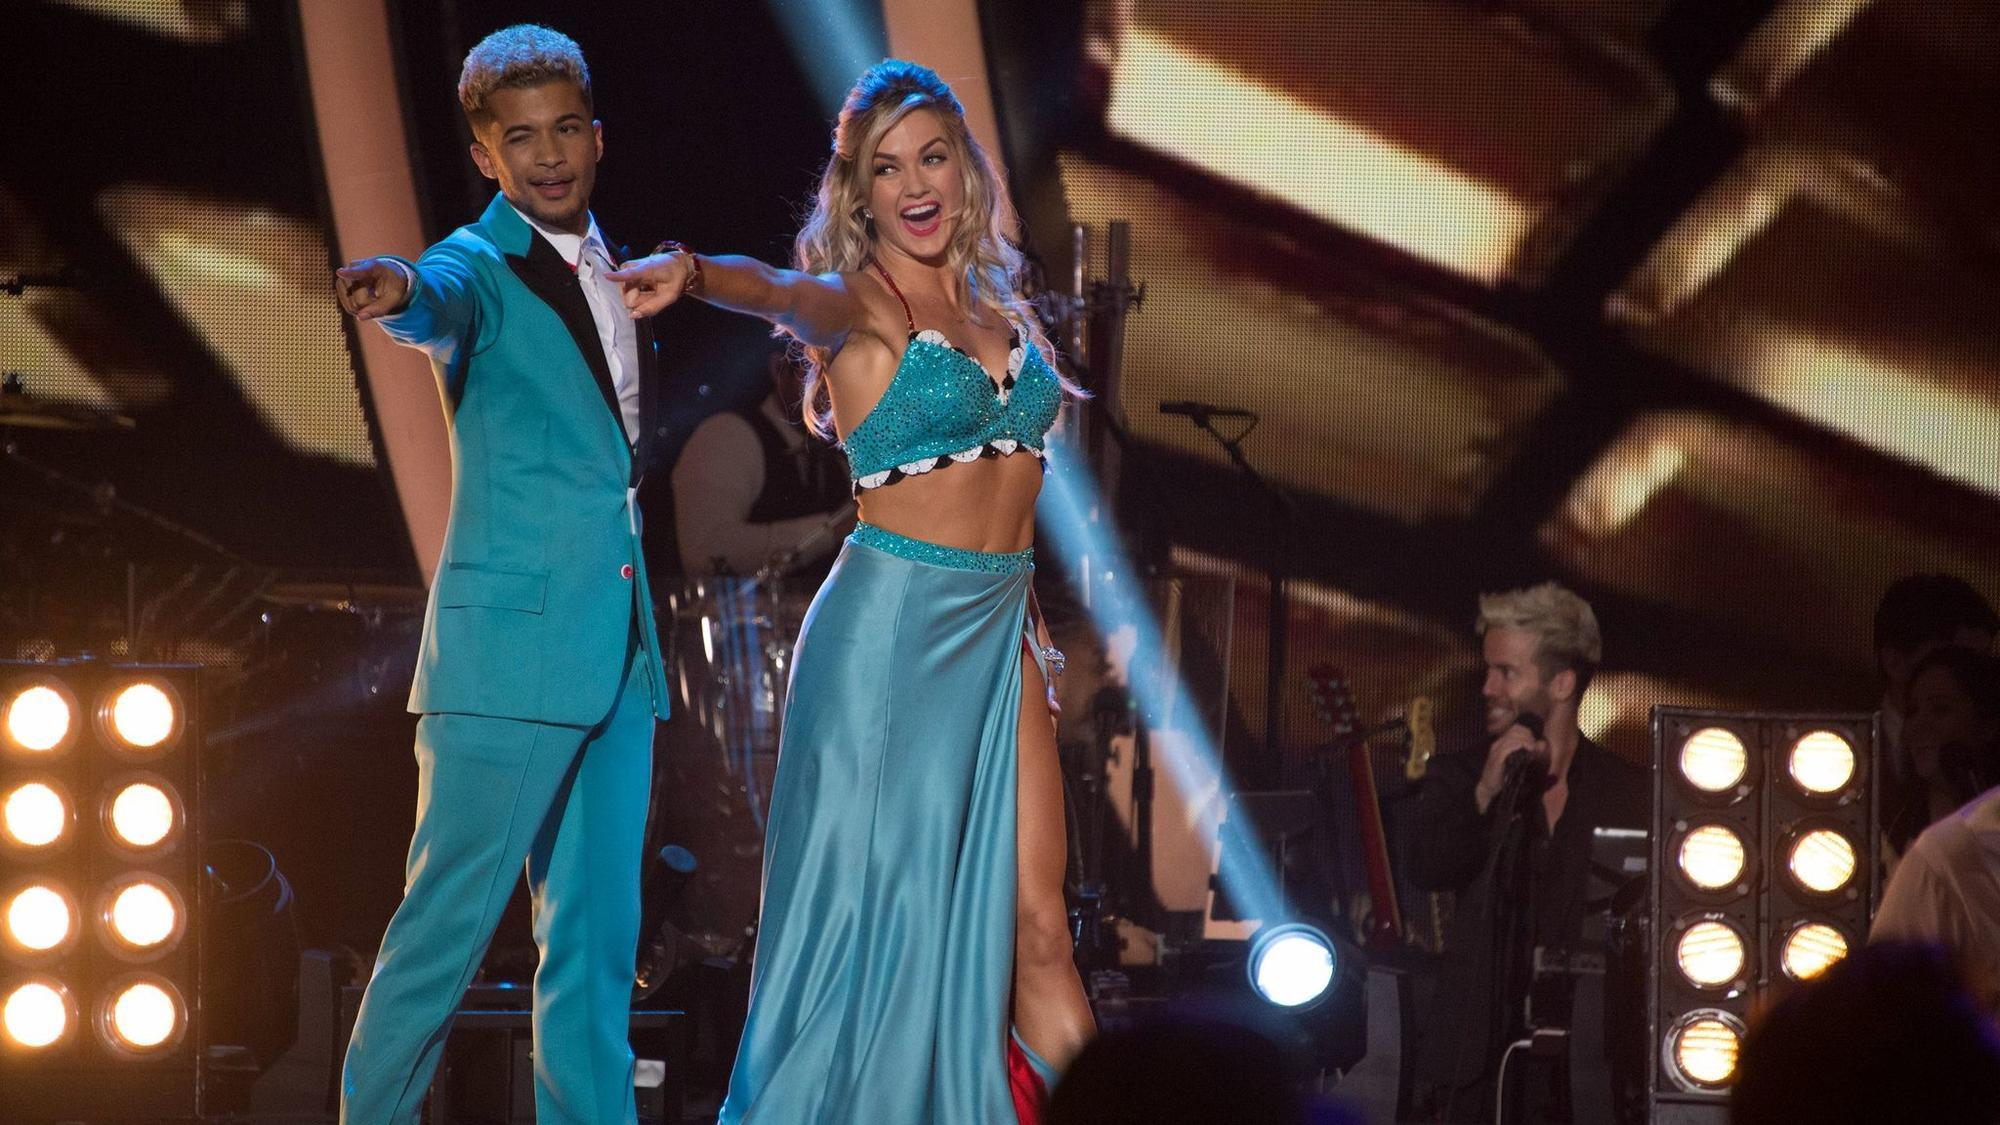 'Dancing With the Stars' recap: Terrell Owens eliminated, Jordan Fisher stands out